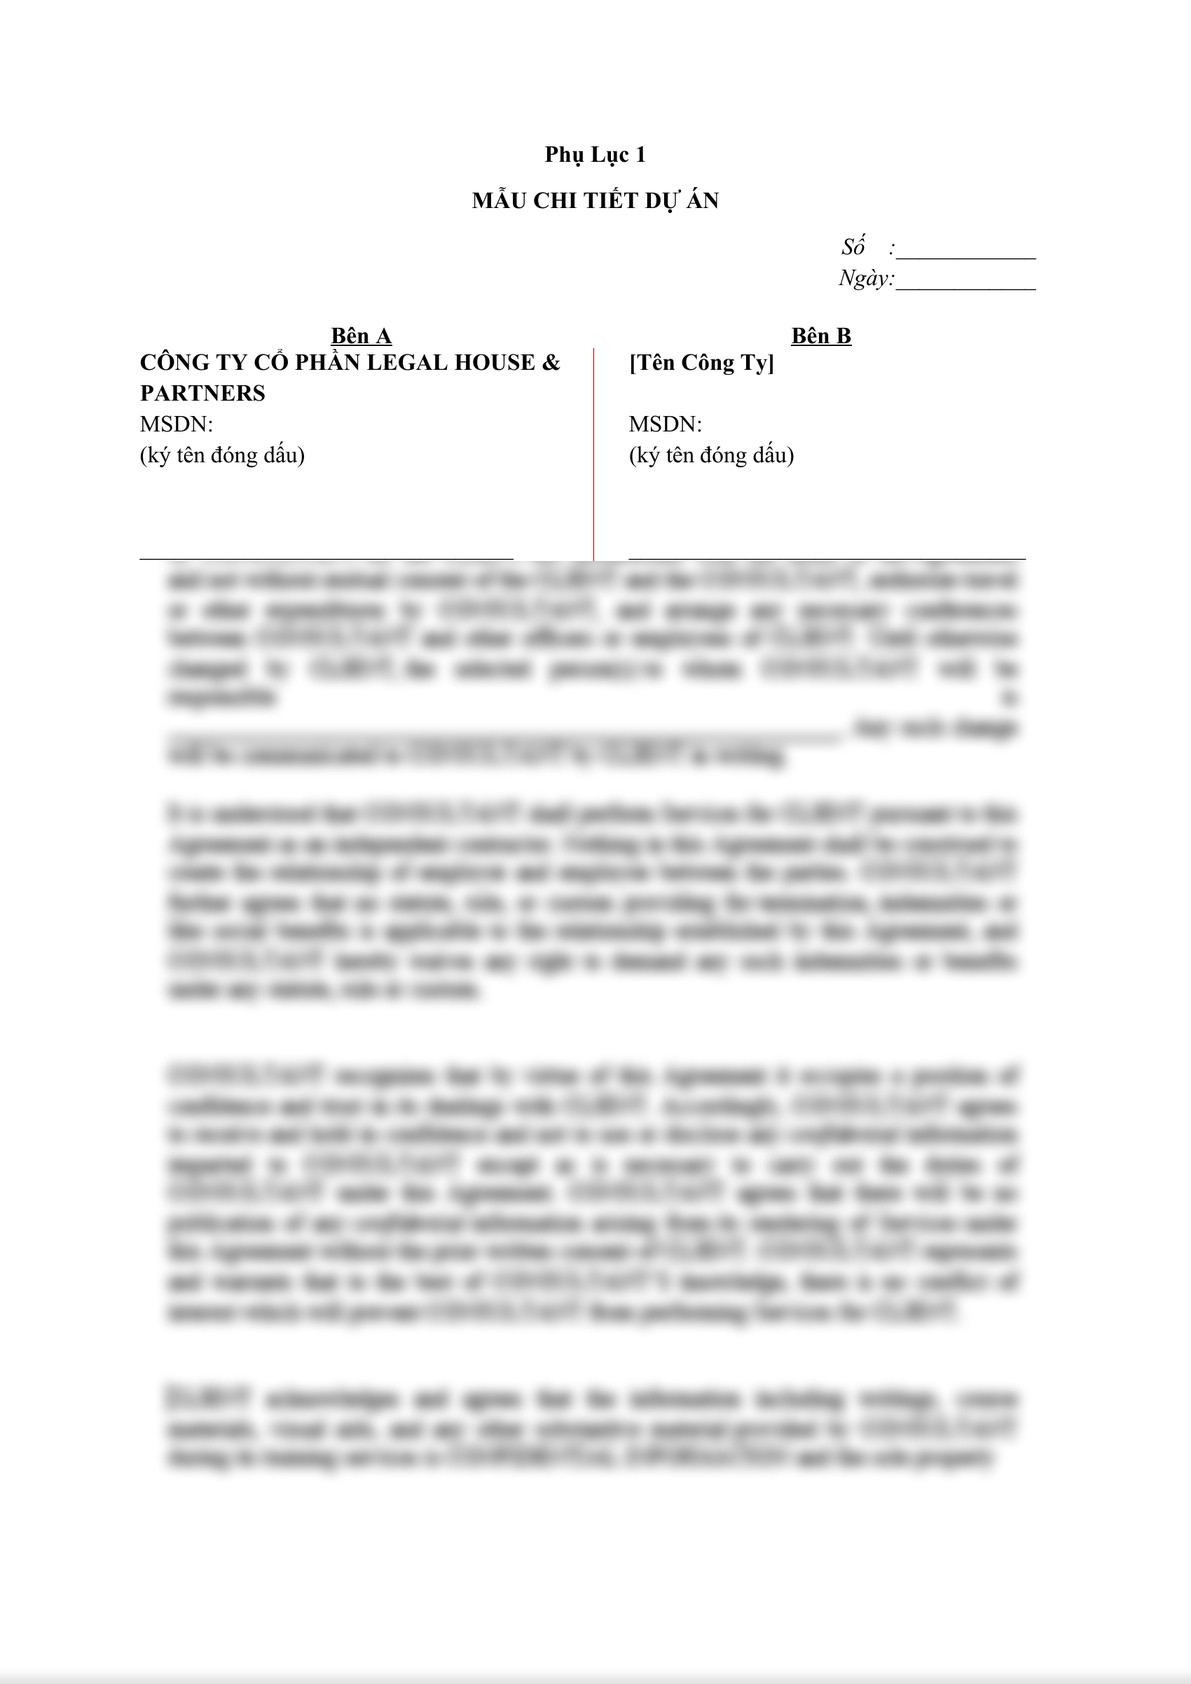 Master project collaboration agreement-9